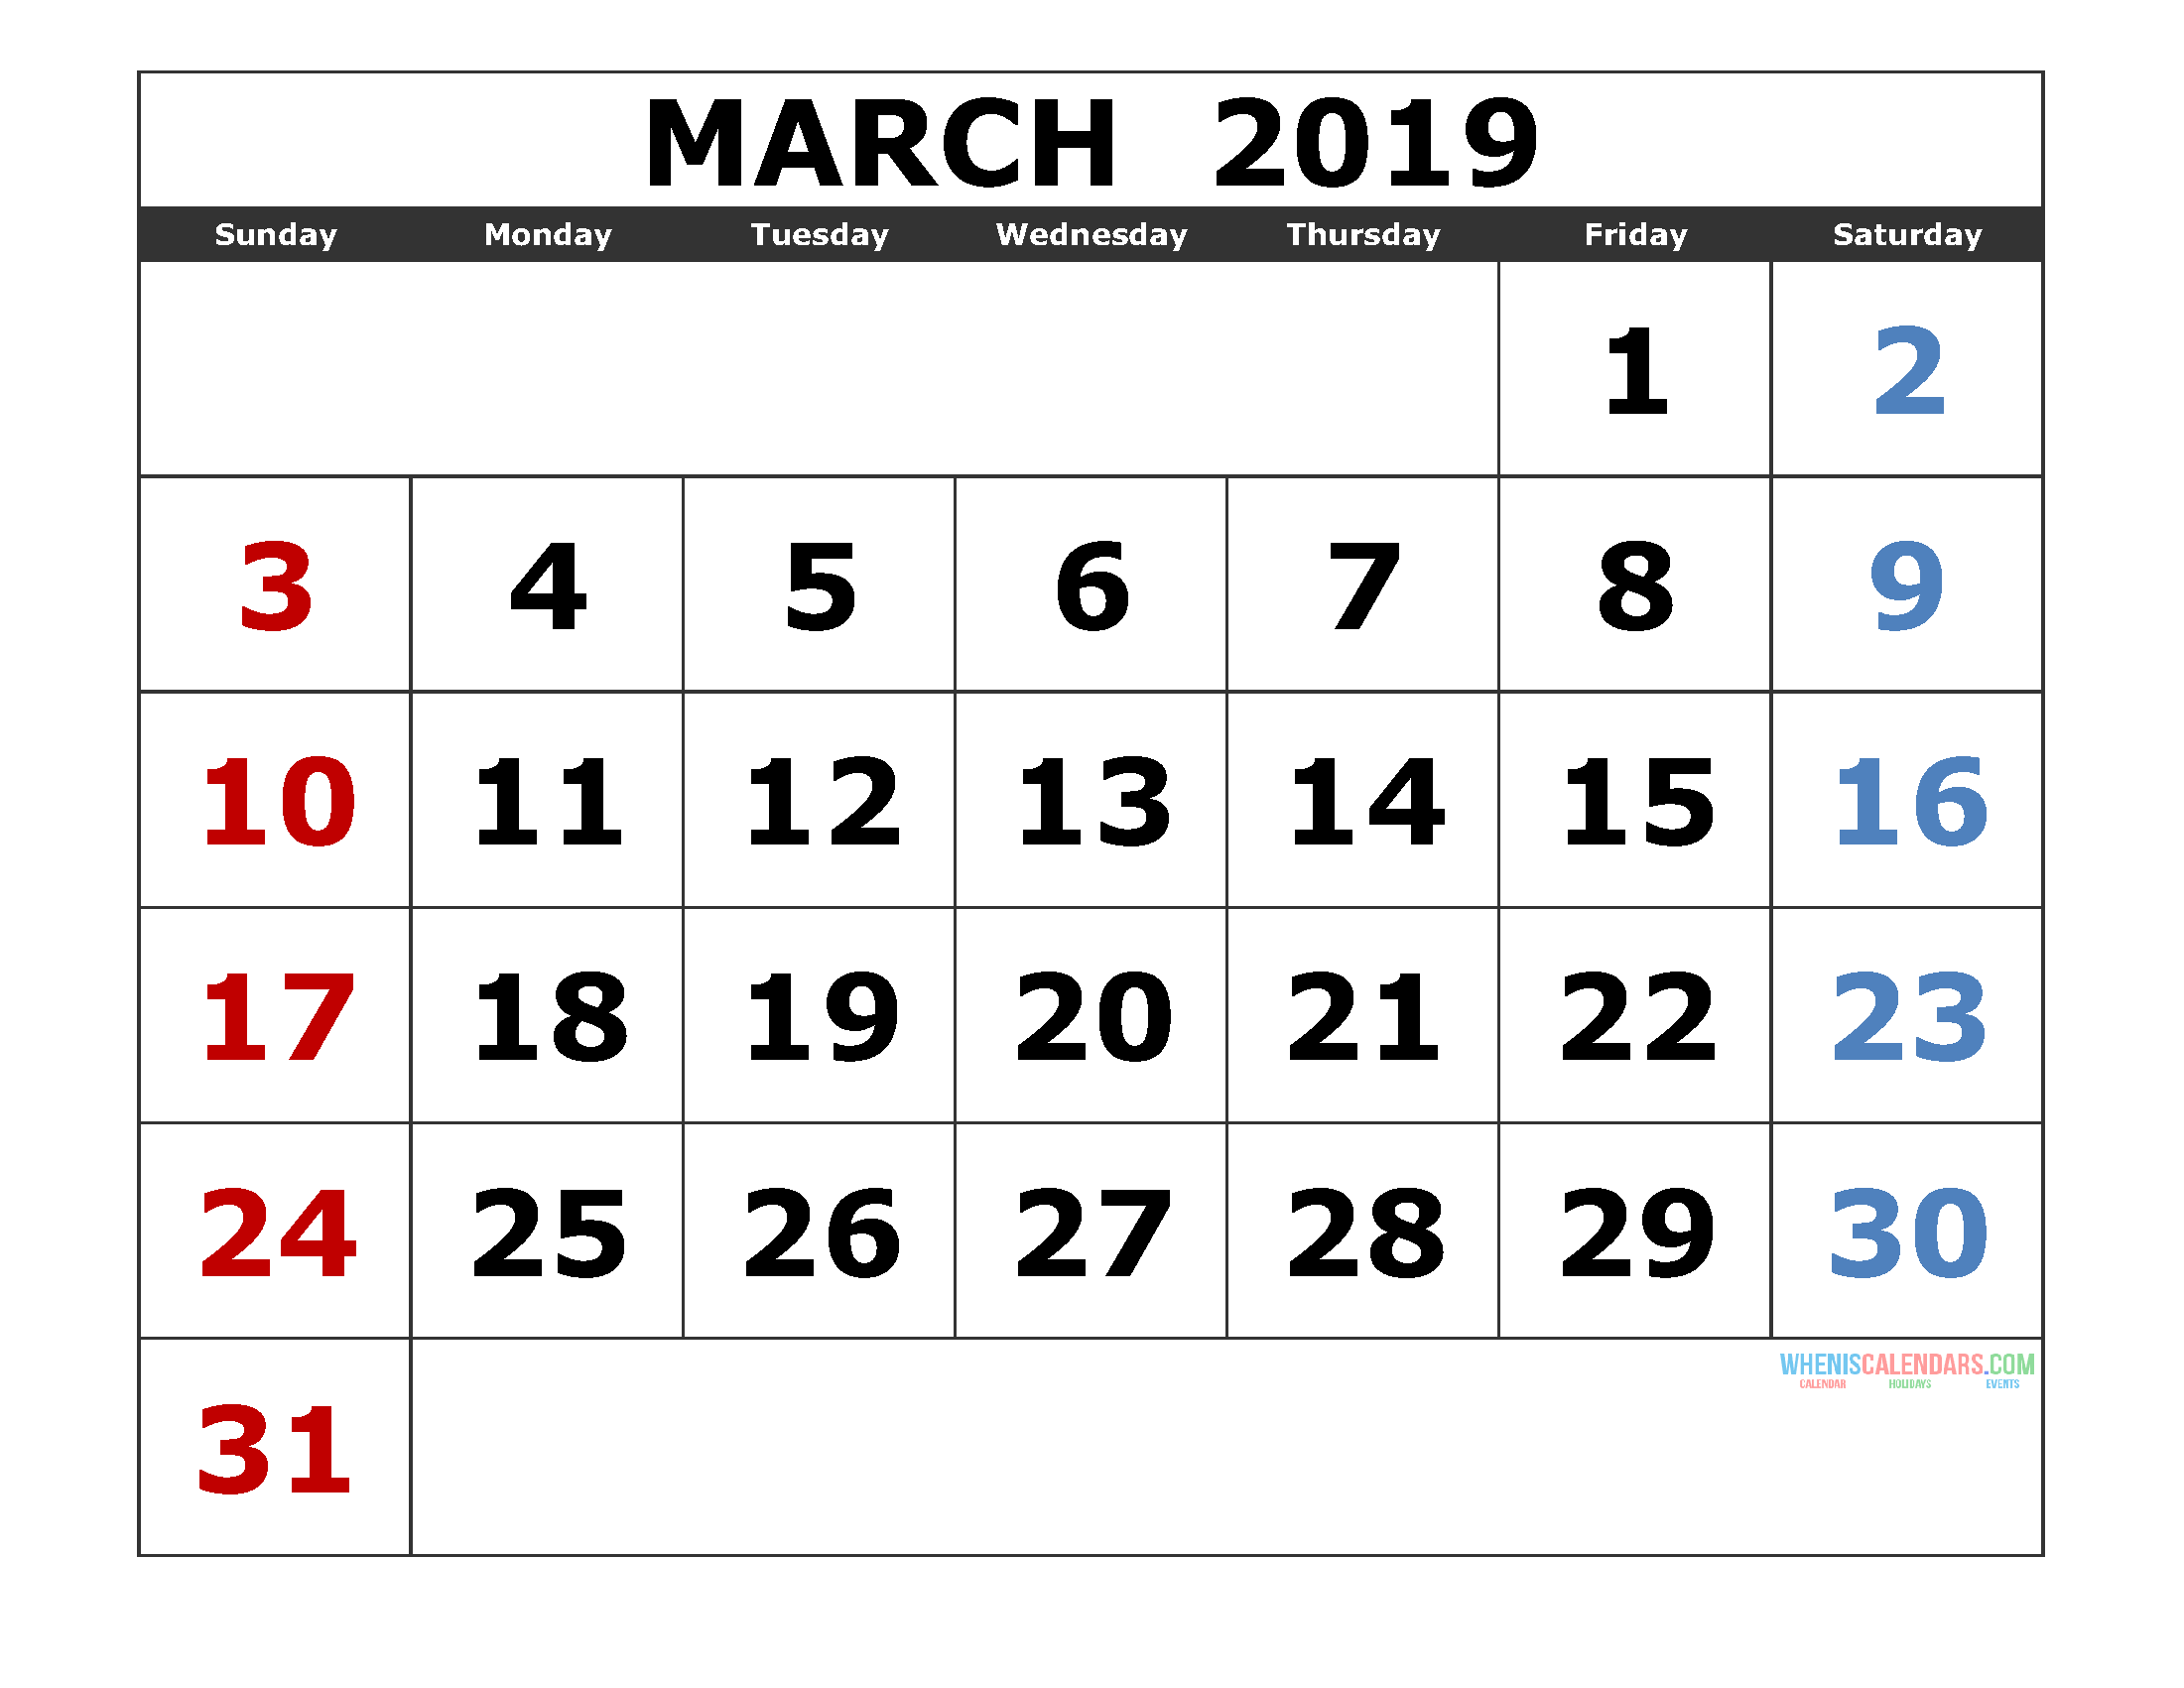 March 2019 Printable Calendar Template Excel, PDF, Image